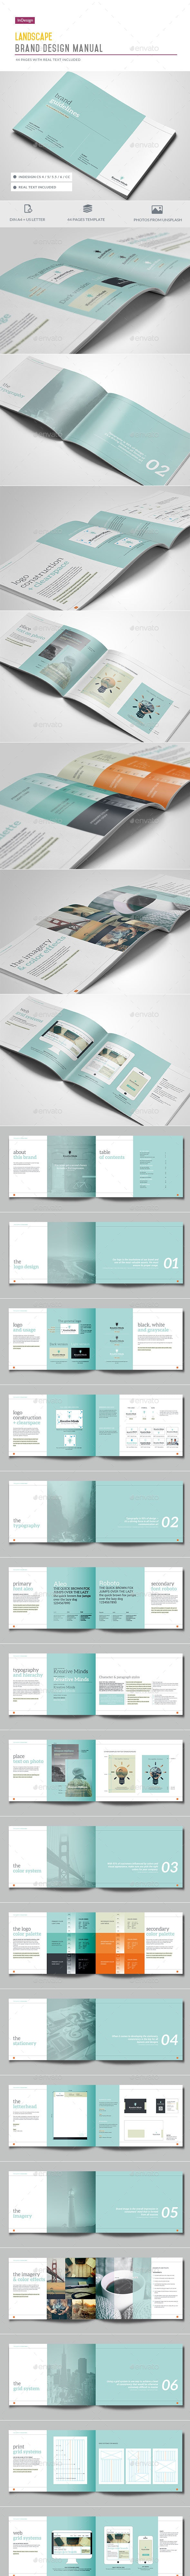 Brand Guidelines - 44 Pages - Corporate Brochures